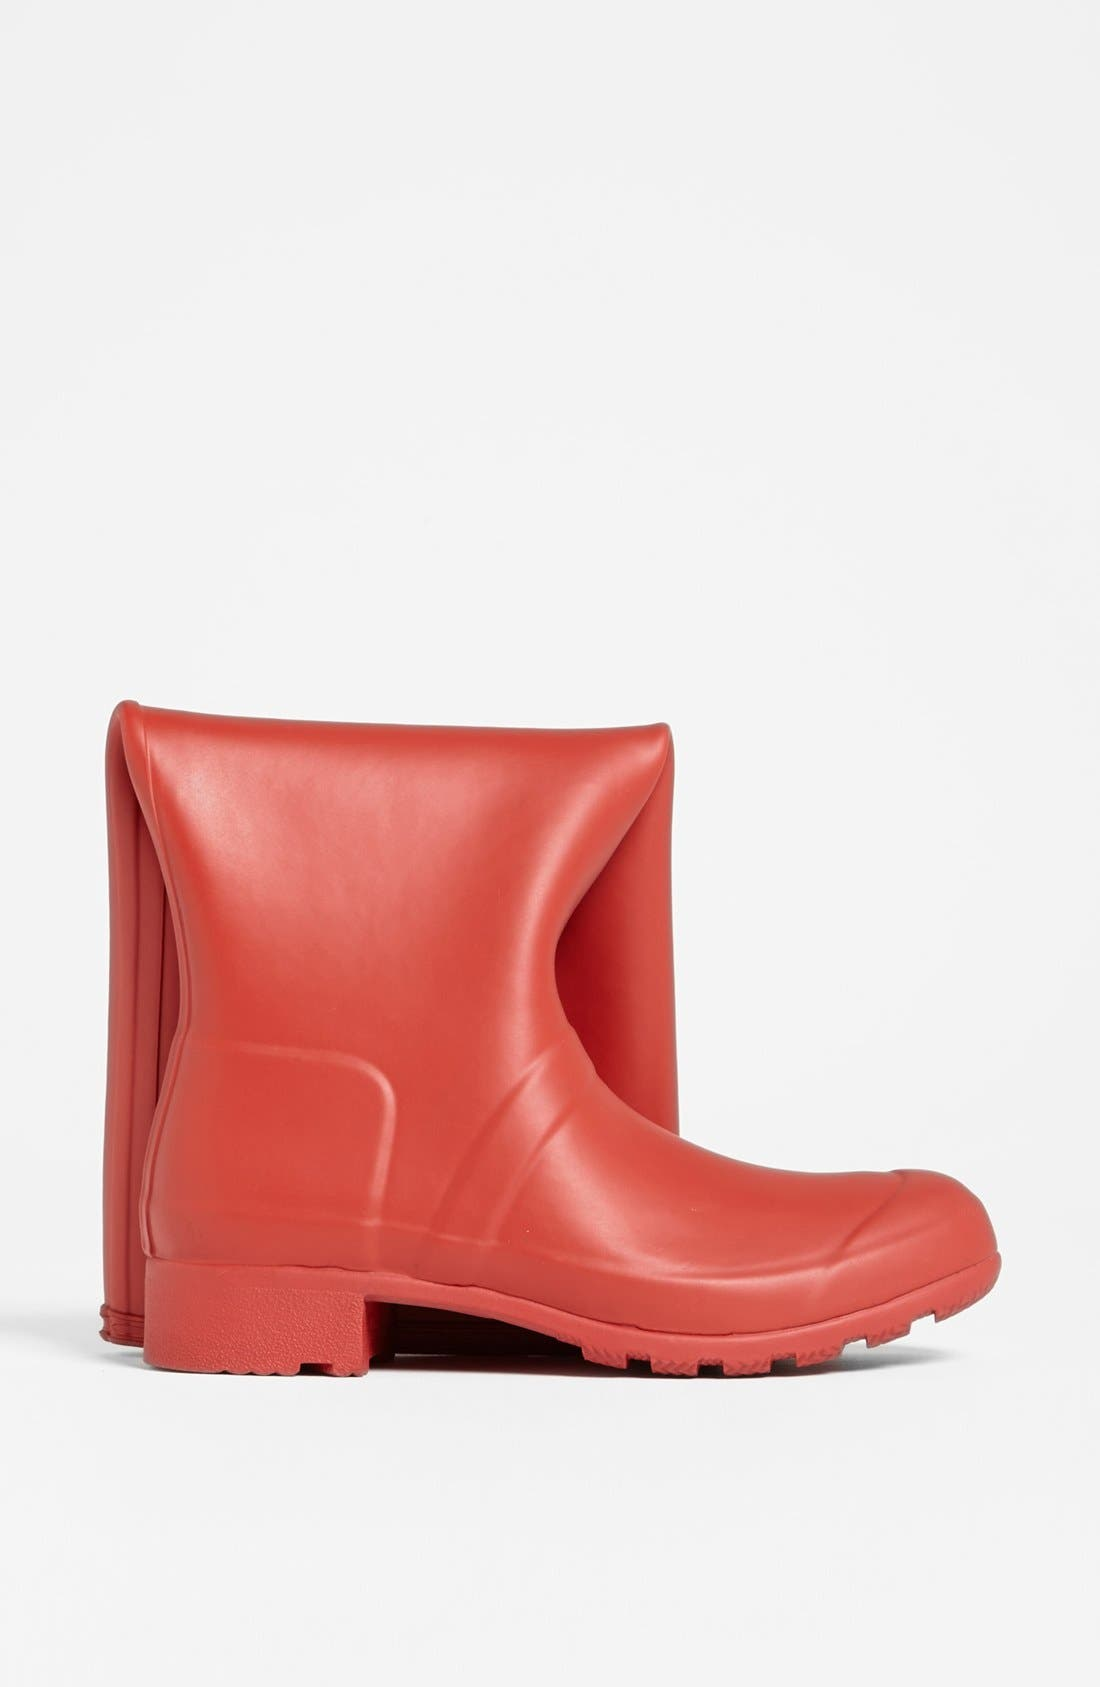 'Tour' Packable Rain Boot,                             Alternate thumbnail 72, color,